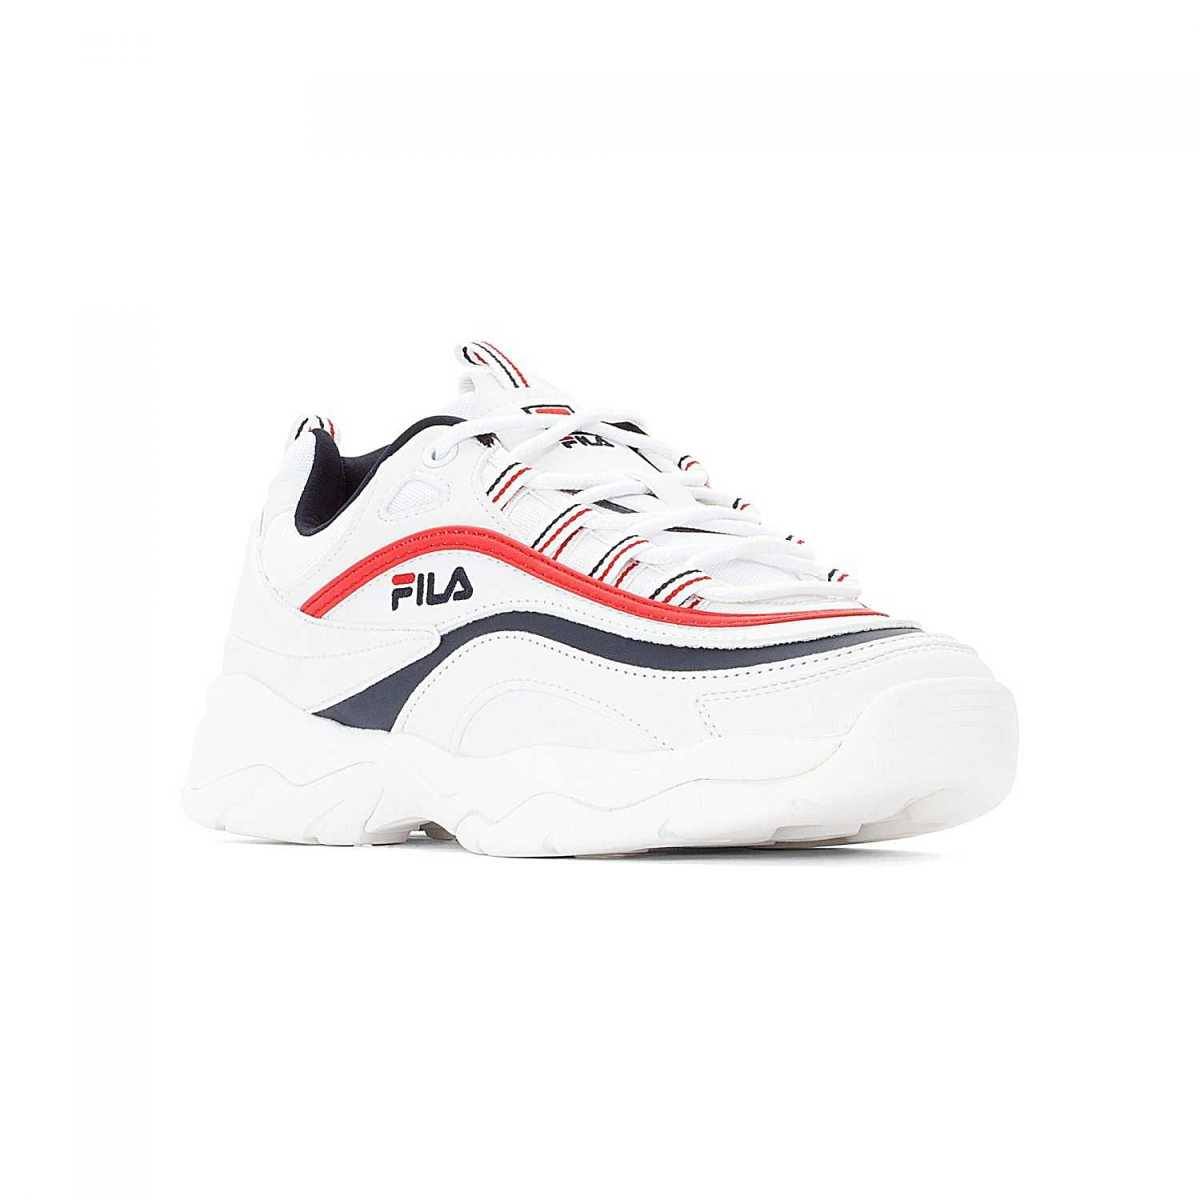 FILA Ray Low Wmn white-navy-red in Blue for Women - GOOFASH